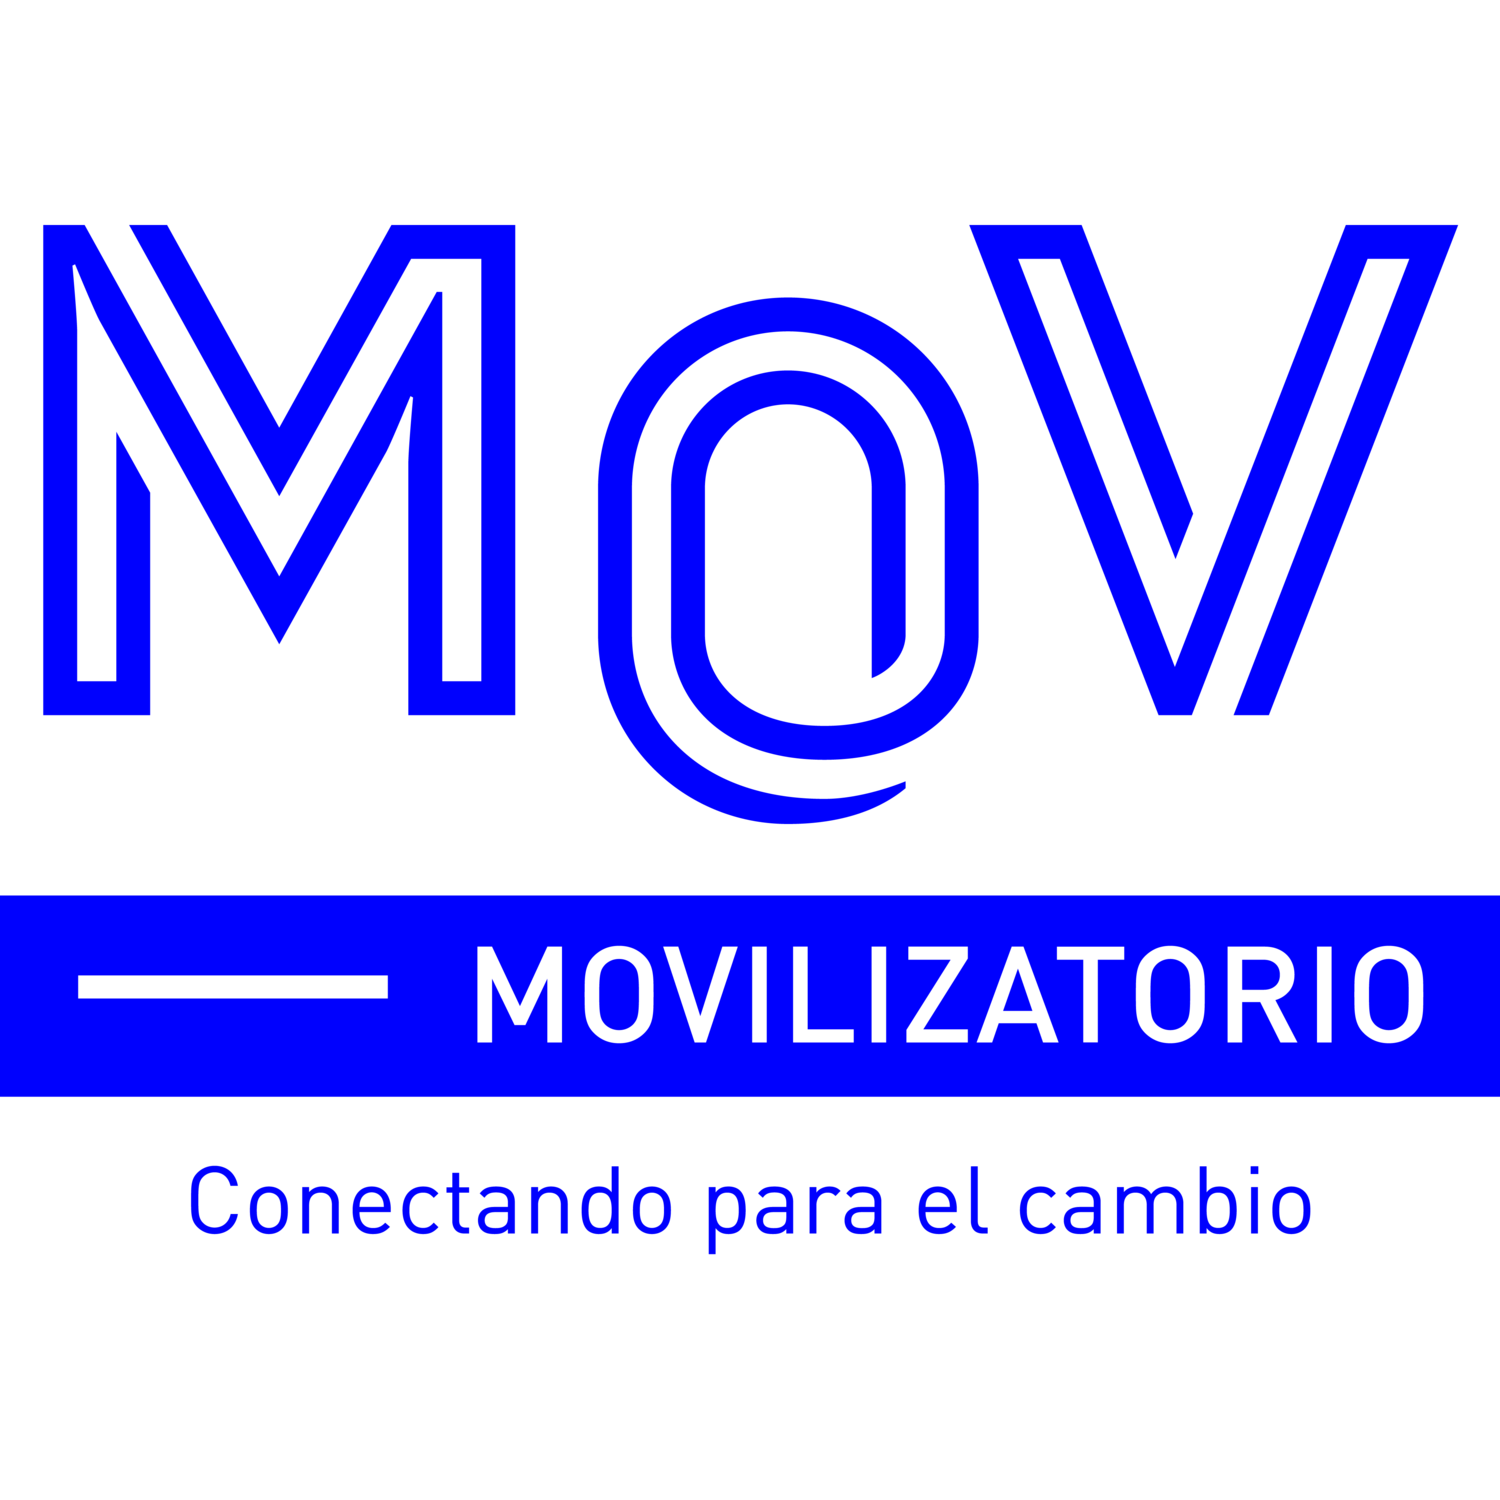 Movilizatorio